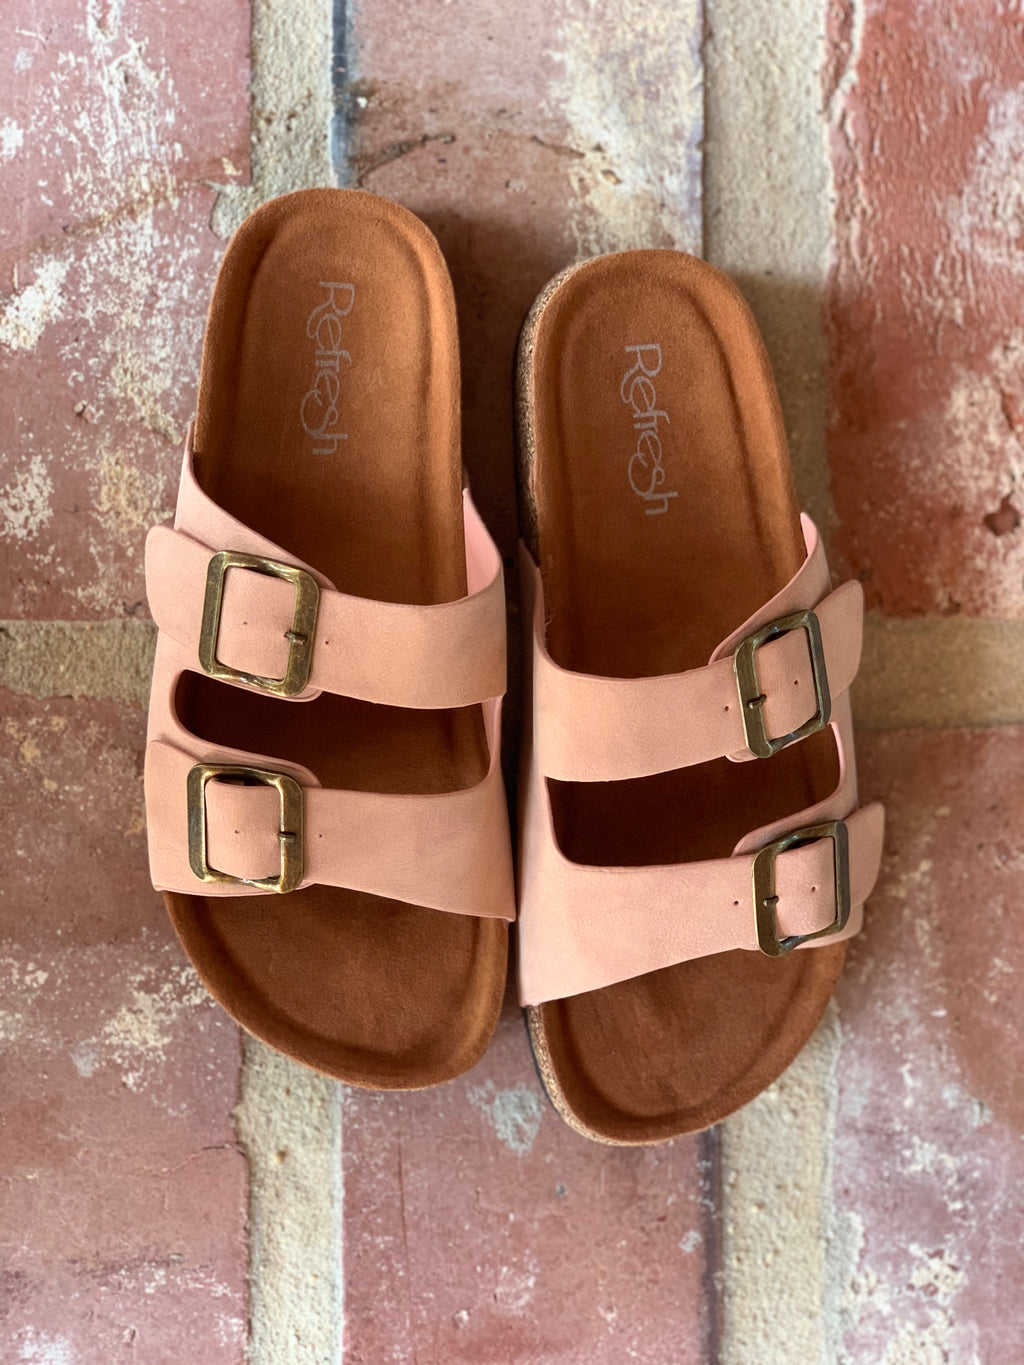 the new neutral double strap slides